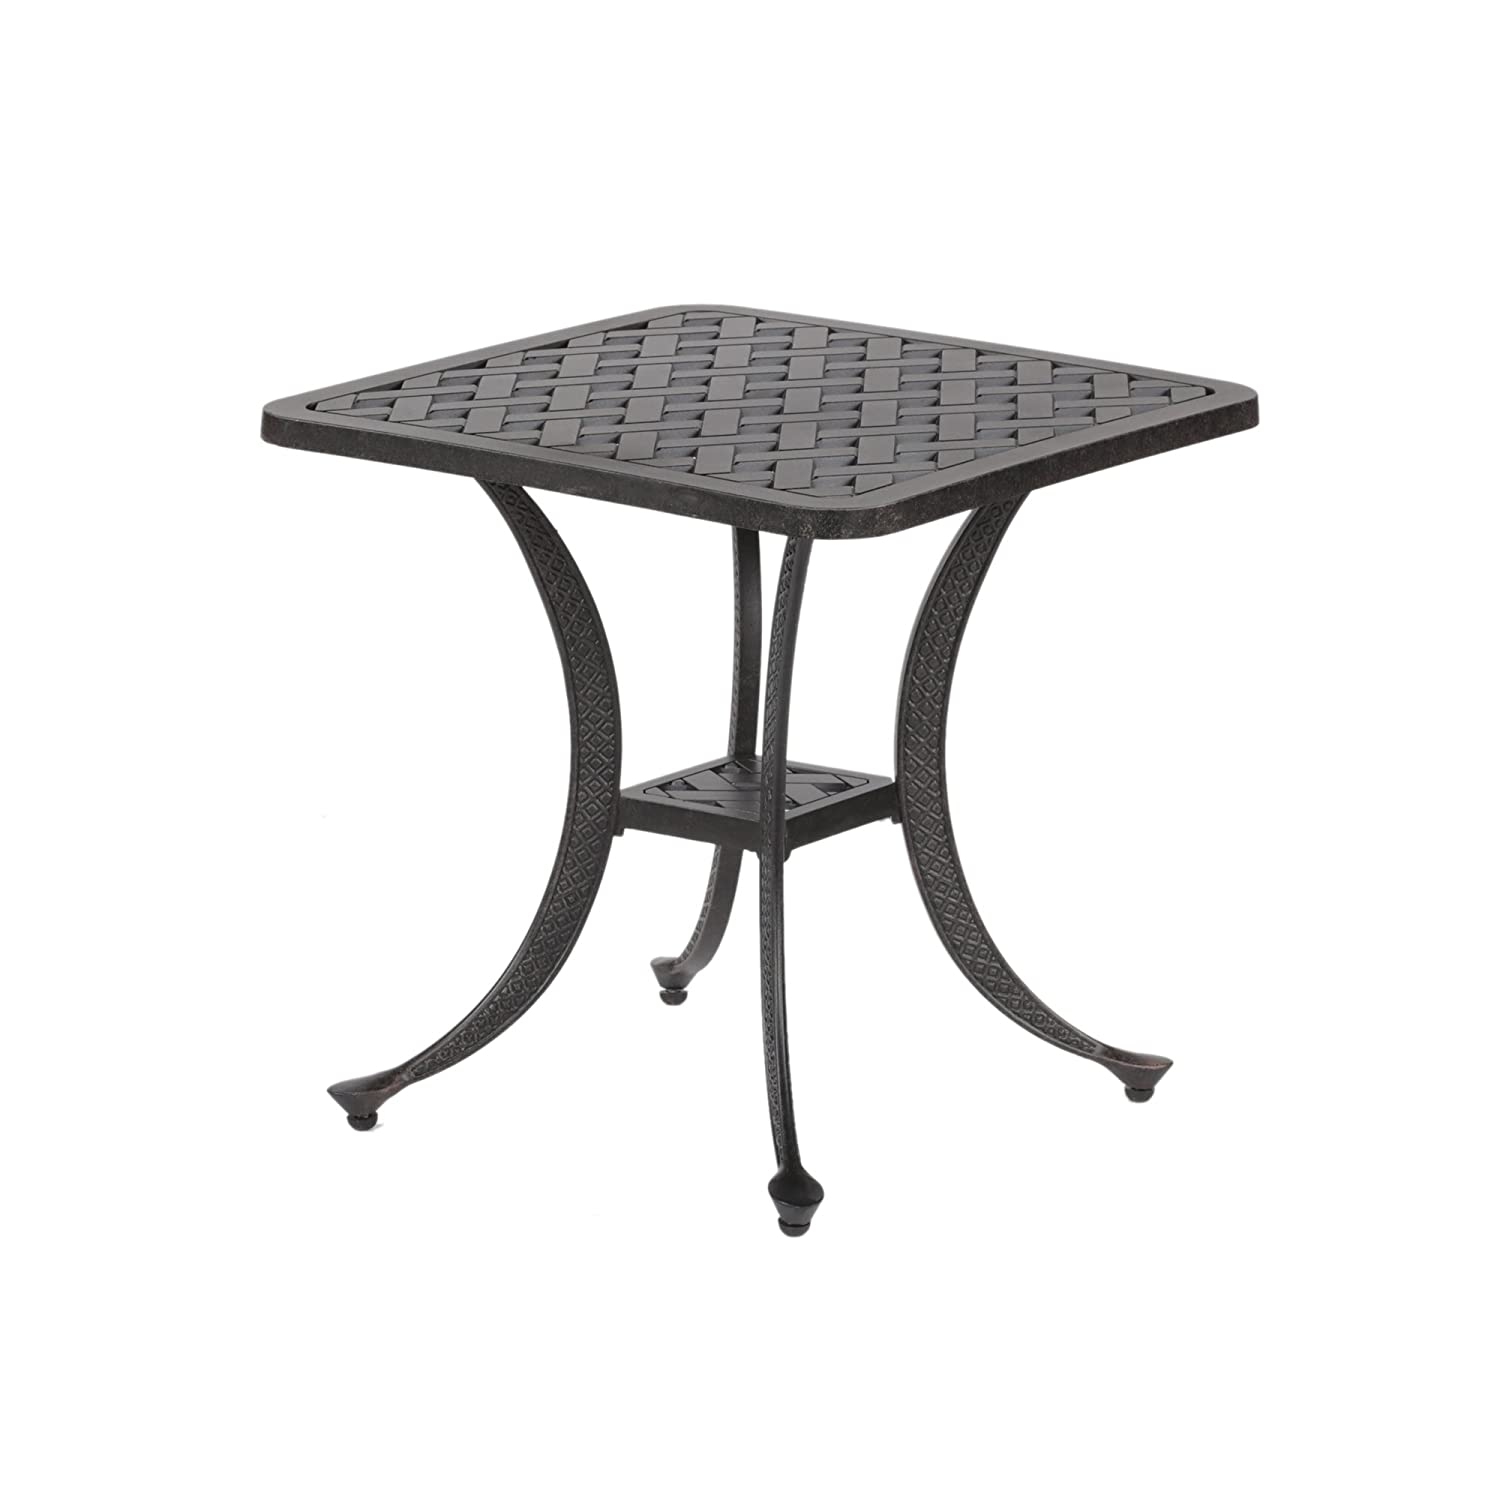 Ipatio Sparta Standard Square Cast Aluminum Side Table Outdoor End Table Rust